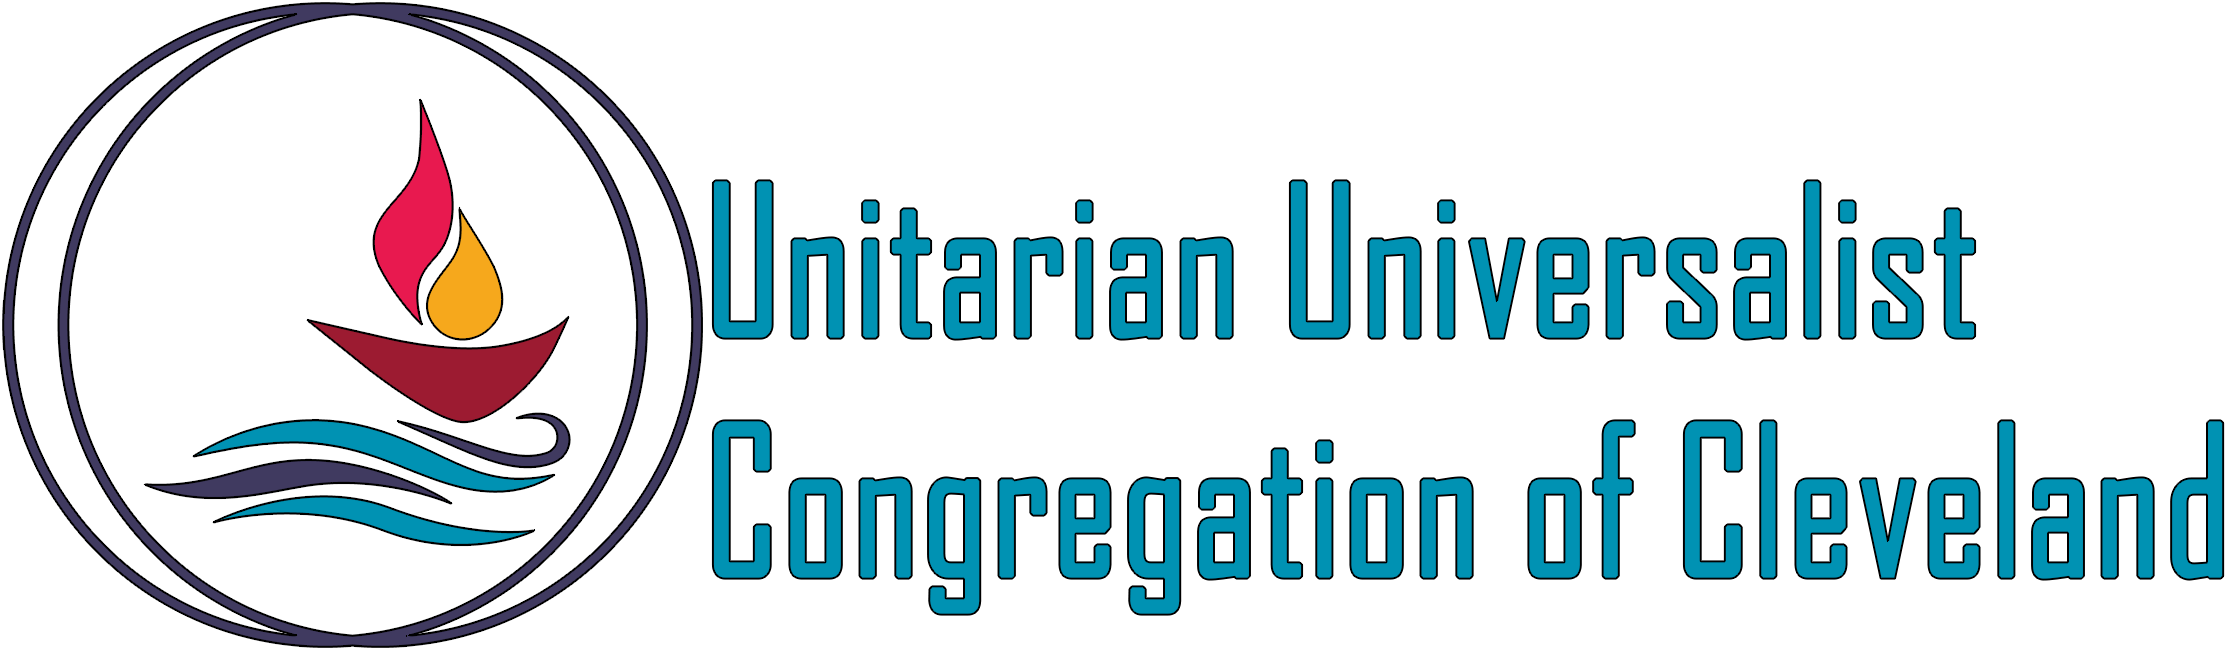 Unitarian Universalist Congregation of Cleveland